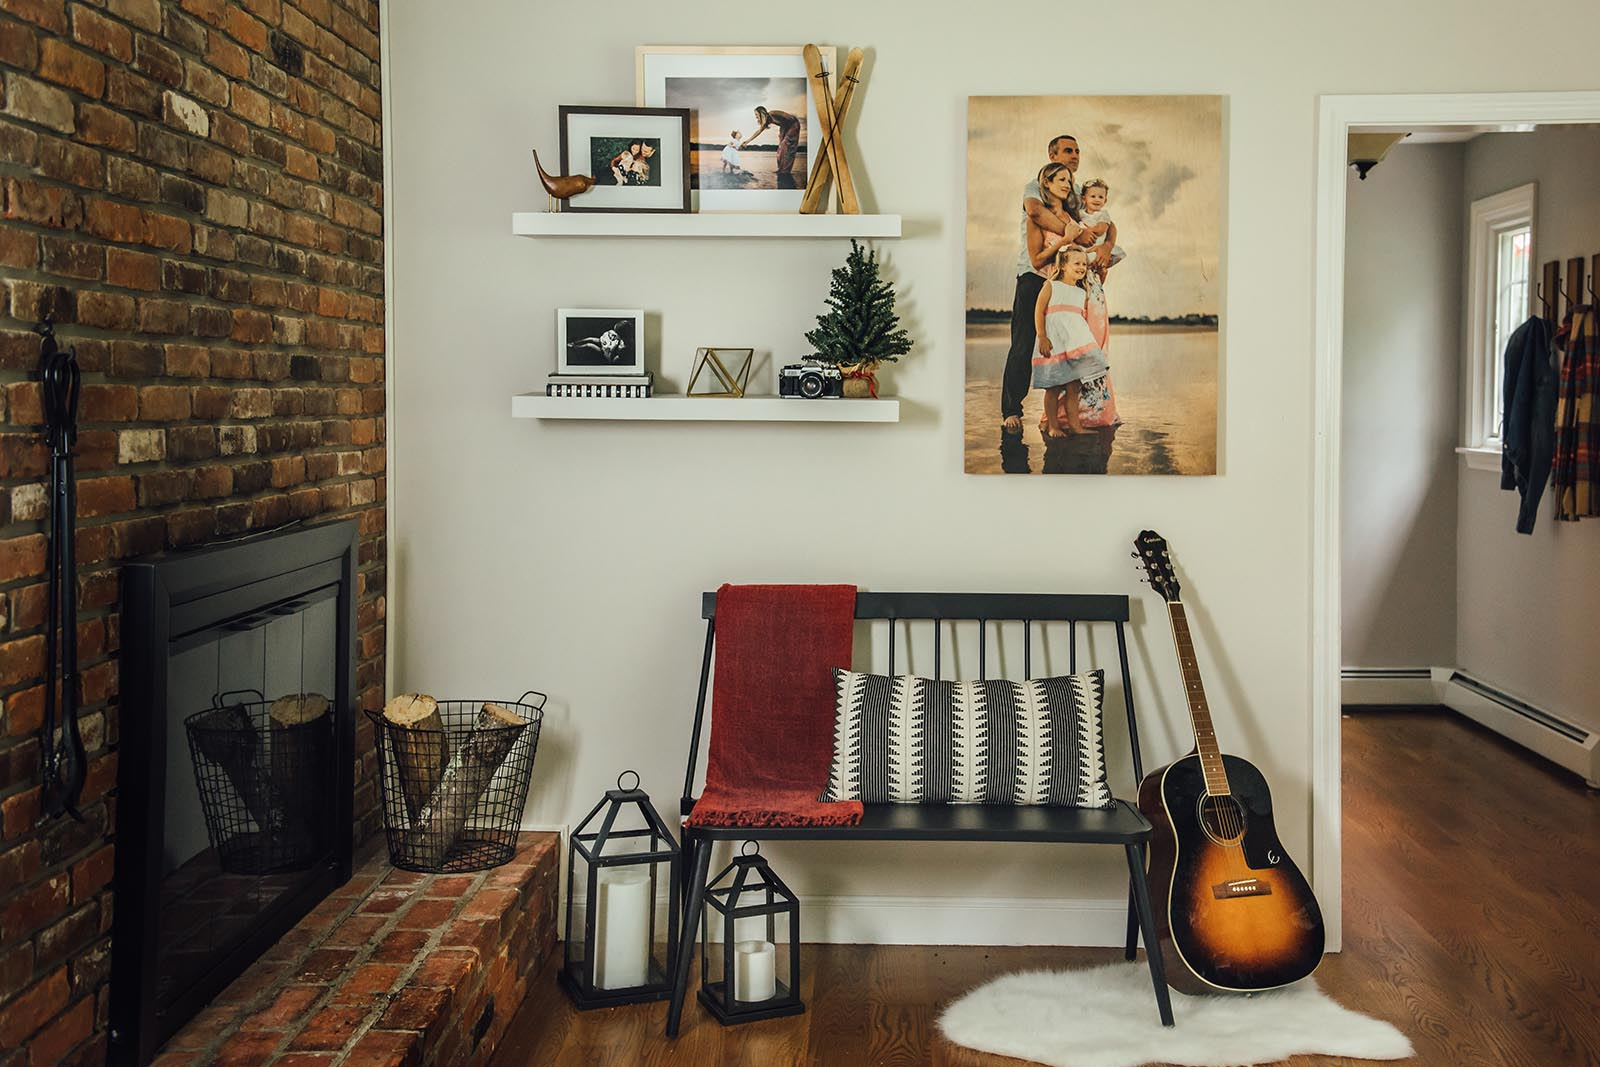 Photo décor: Stylish ideas for home photo display